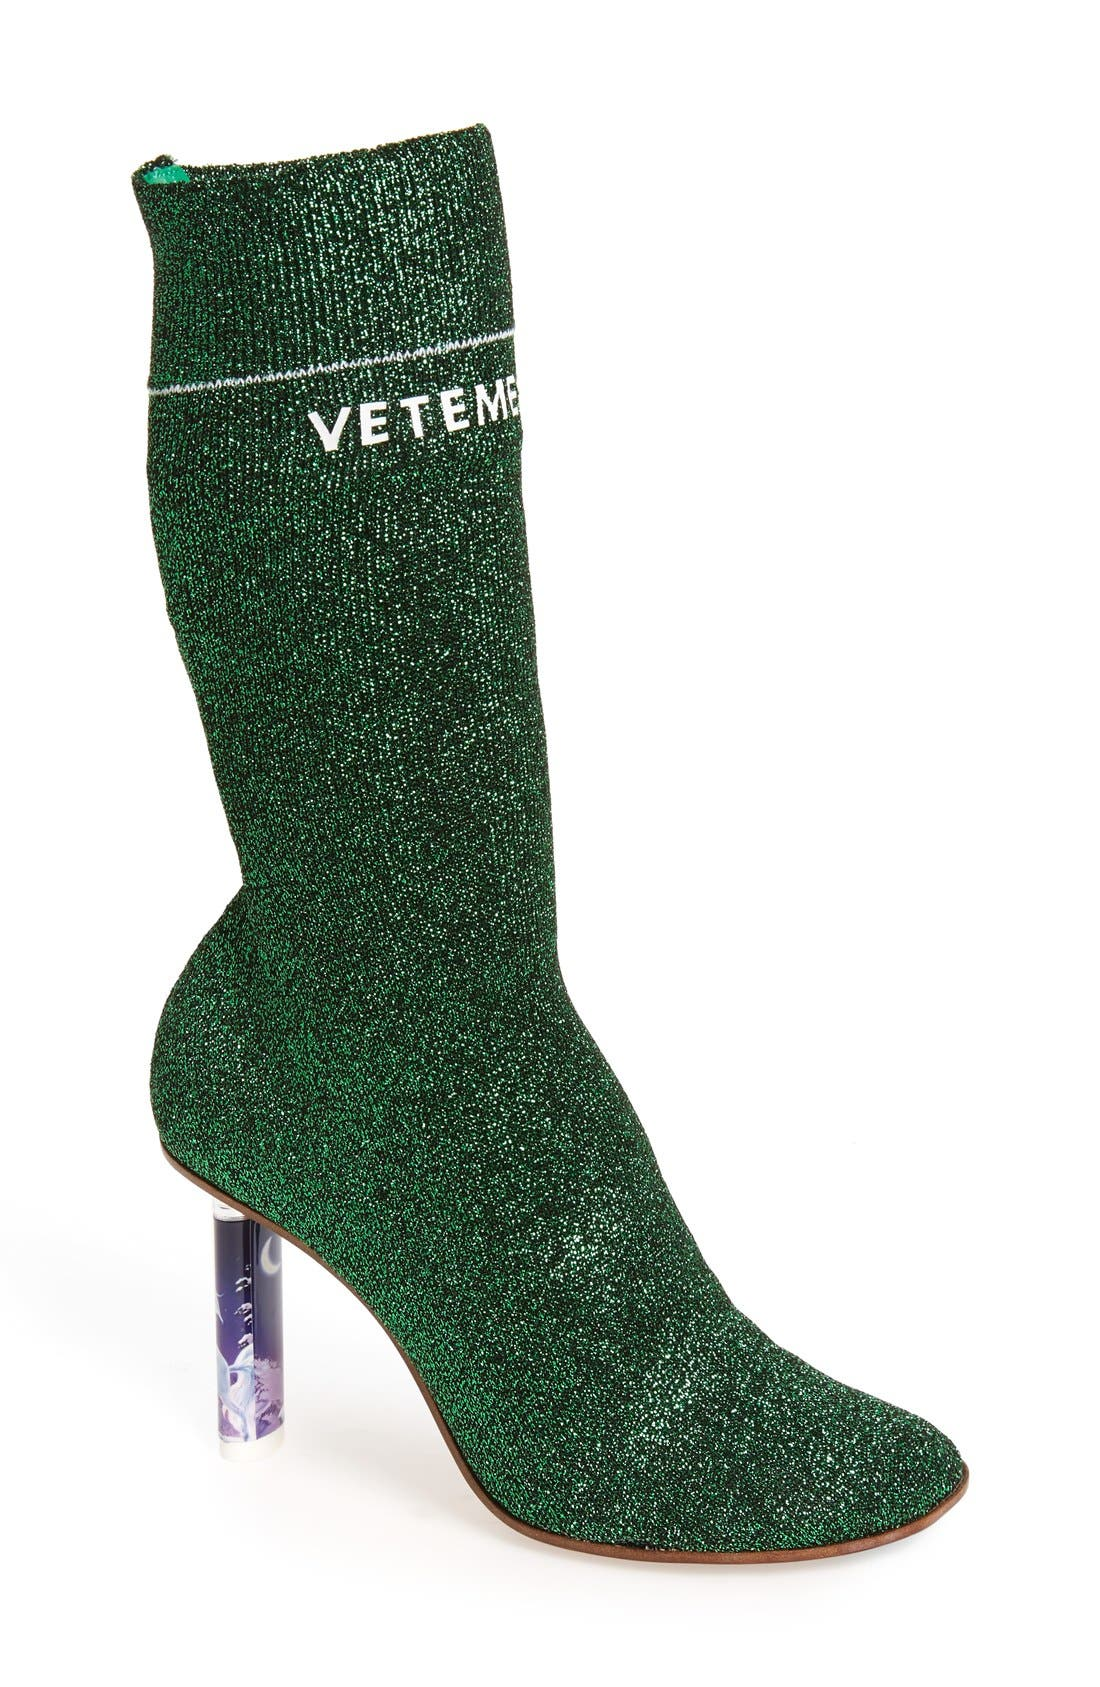 Vetements Sock Boot (Women)